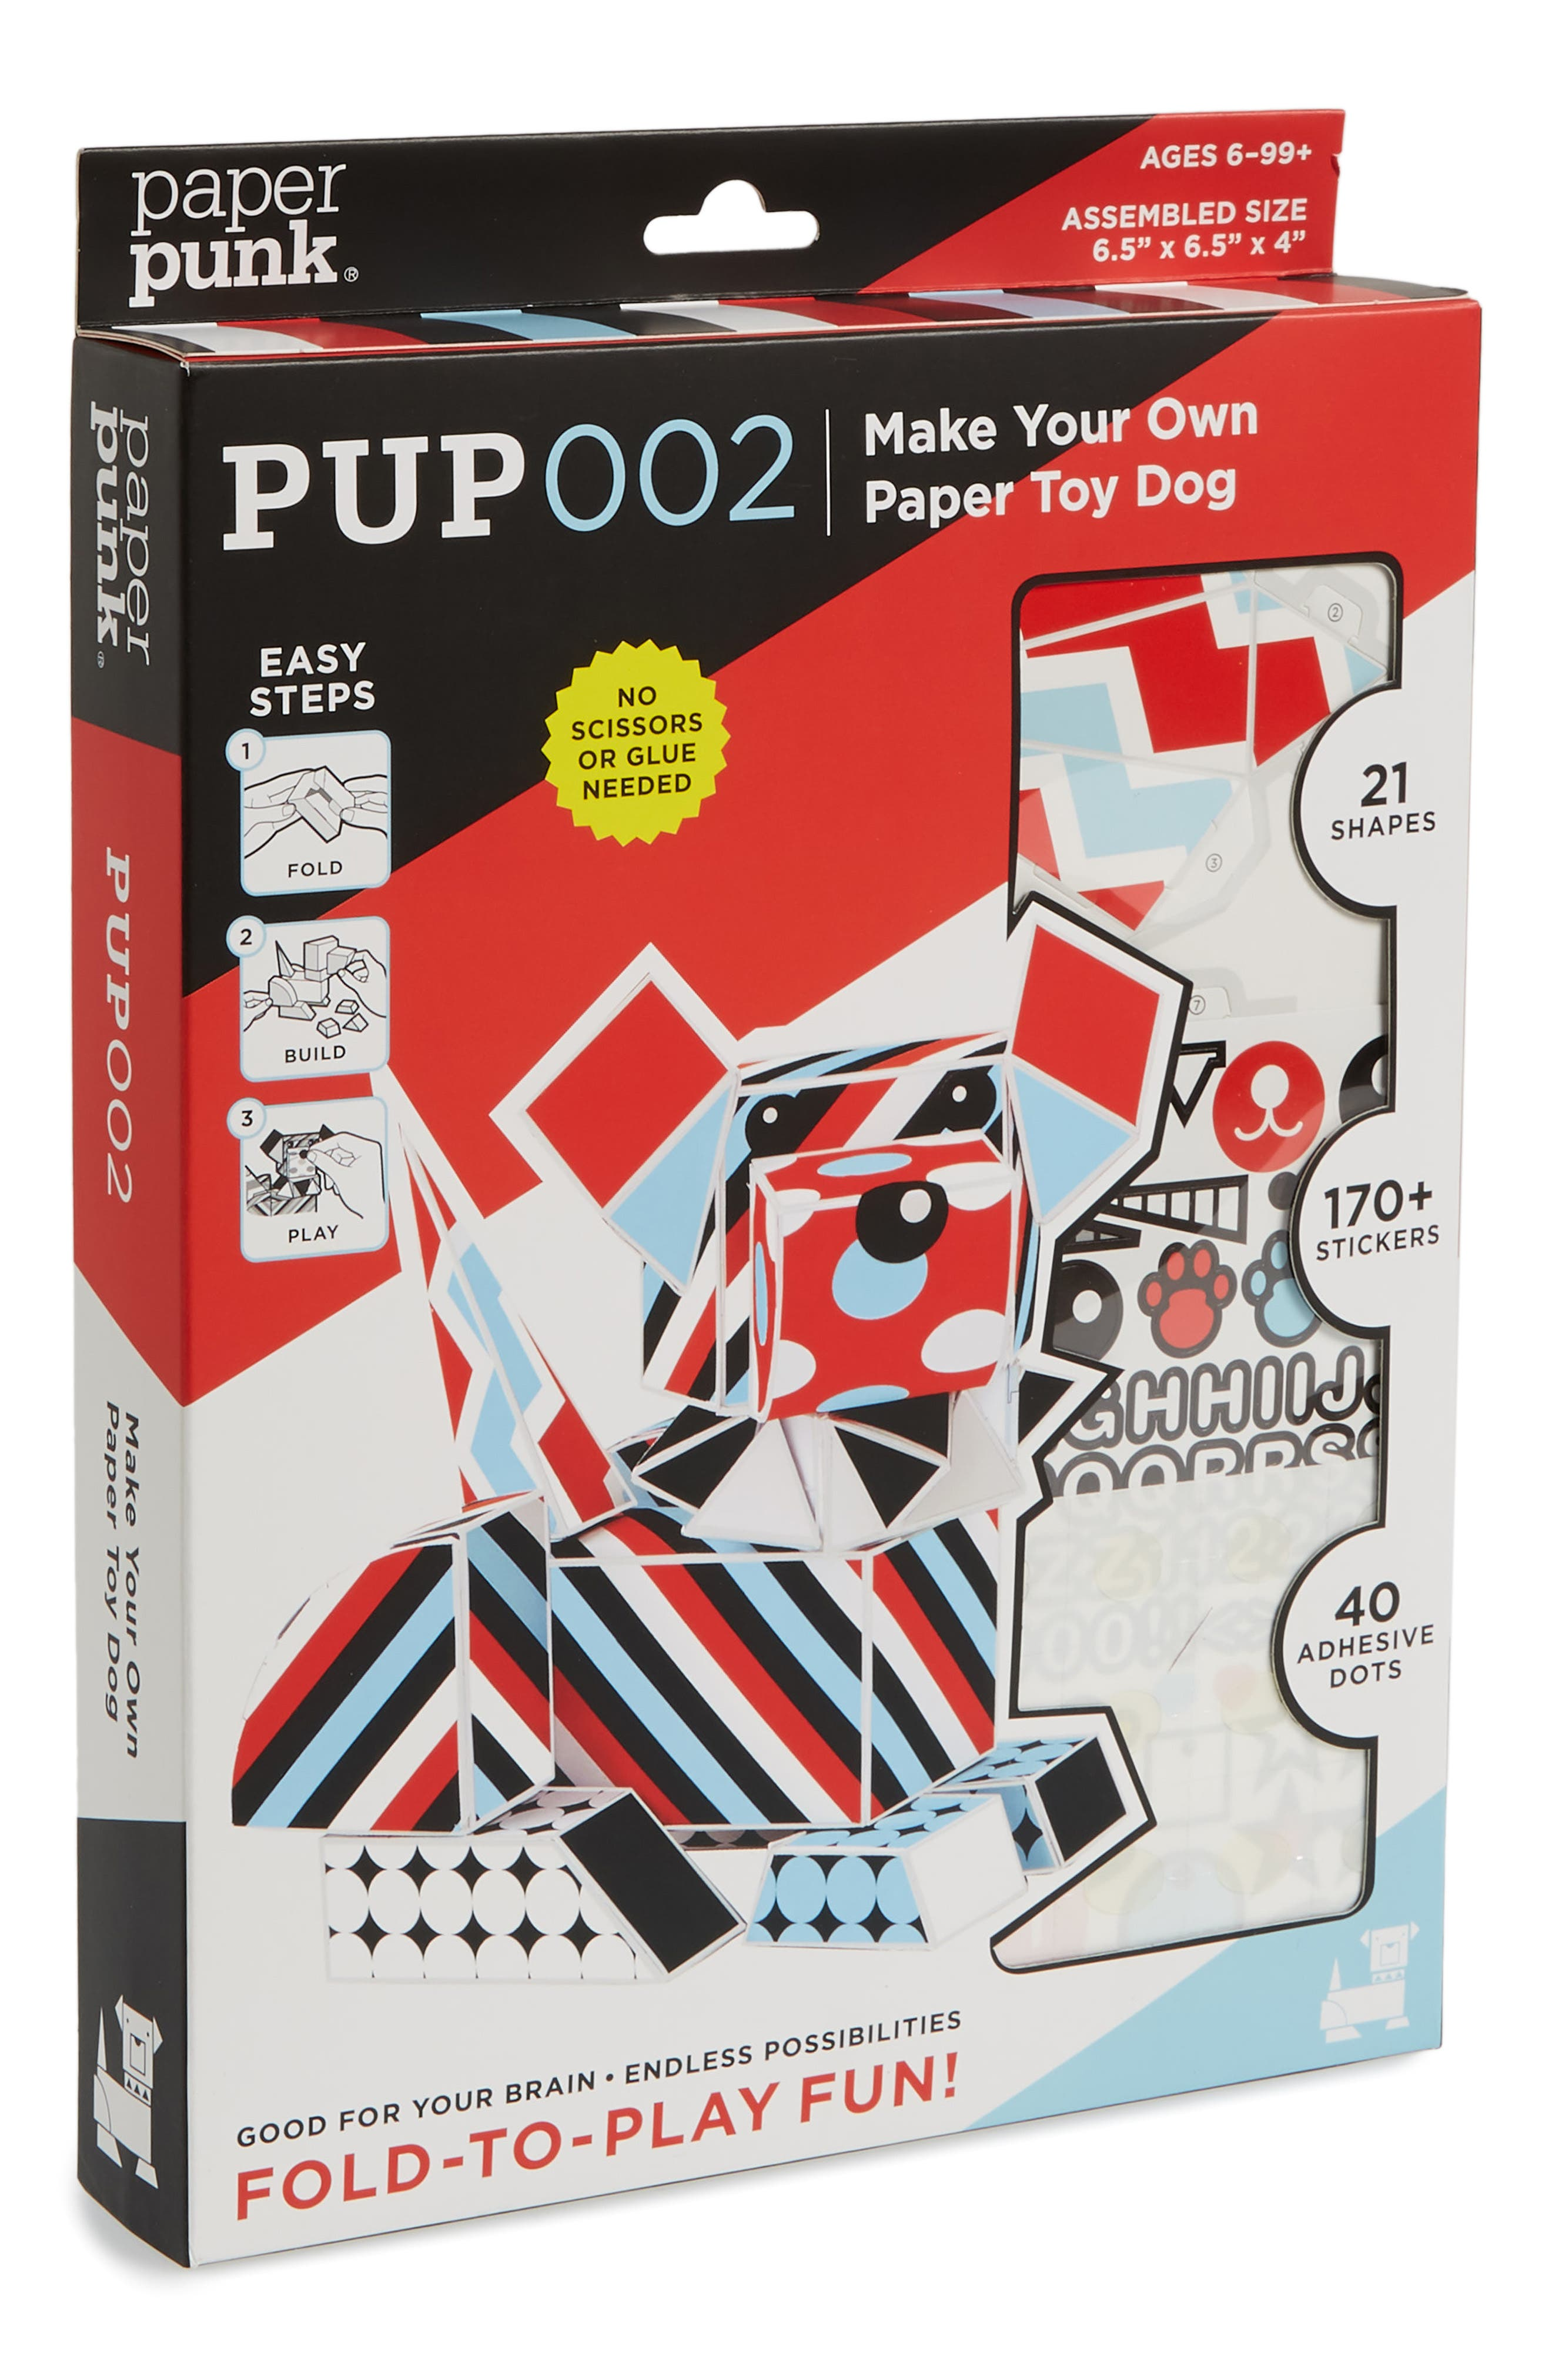 Pup002 Make Your Own Paper Toy Dog Kit,                             Main thumbnail 1, color,                             600